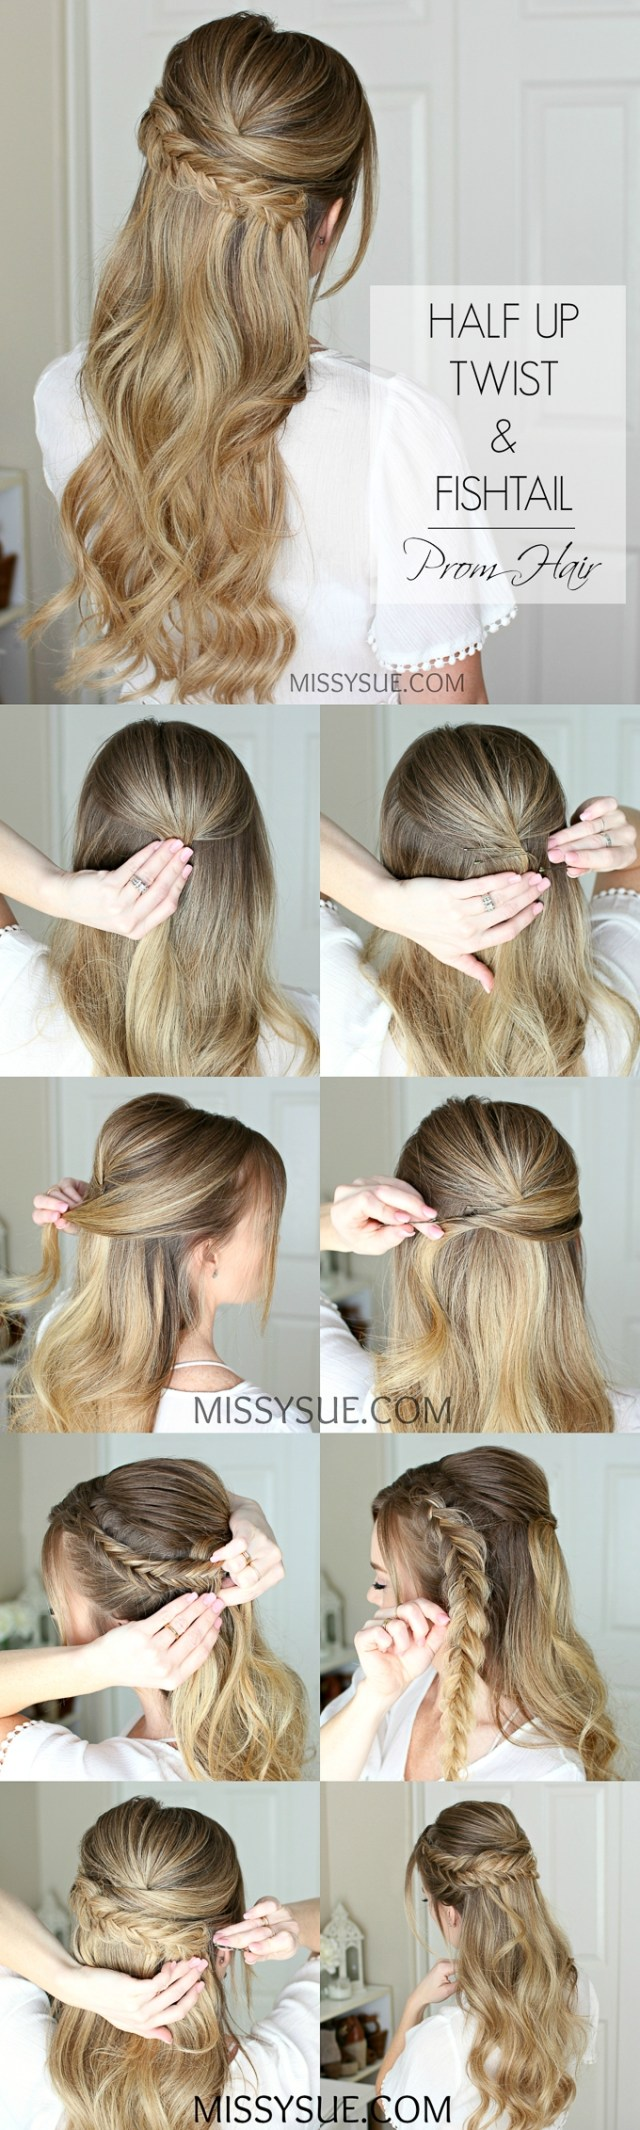 easy half up prom hair | missy sue